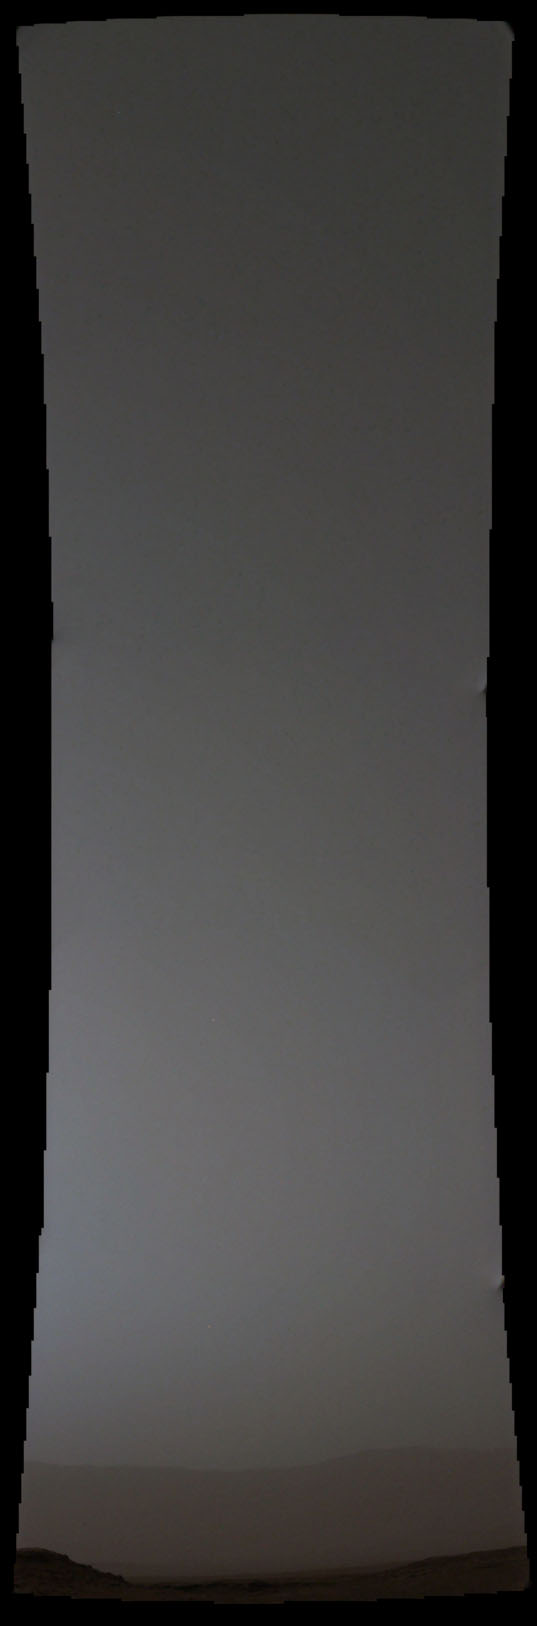 In this panoramic view taken by NASA's Curiosity Rover on October 19th shortly after local sunset (6:11 p.m.), Comet Siding Spring is the single bright pixel at far upper left. Click for a high resolution version. Credit: NASA/JPL-Caltech/Malin Space Science Systems/James Sorenson